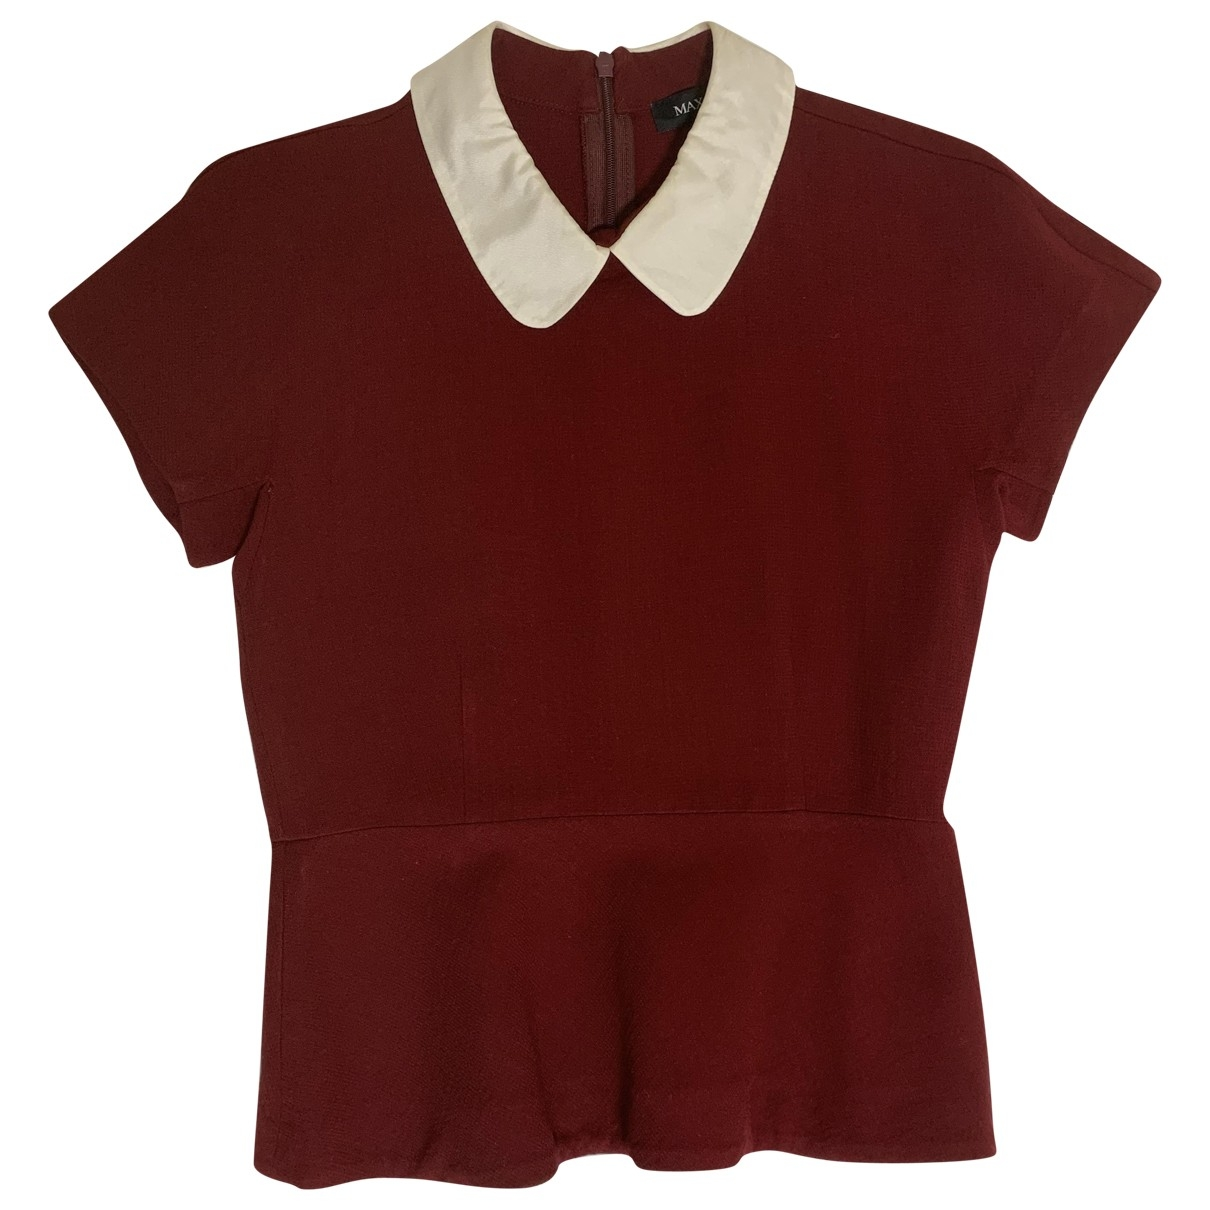 Max & Co \N Burgundy  top for Women 38 IT